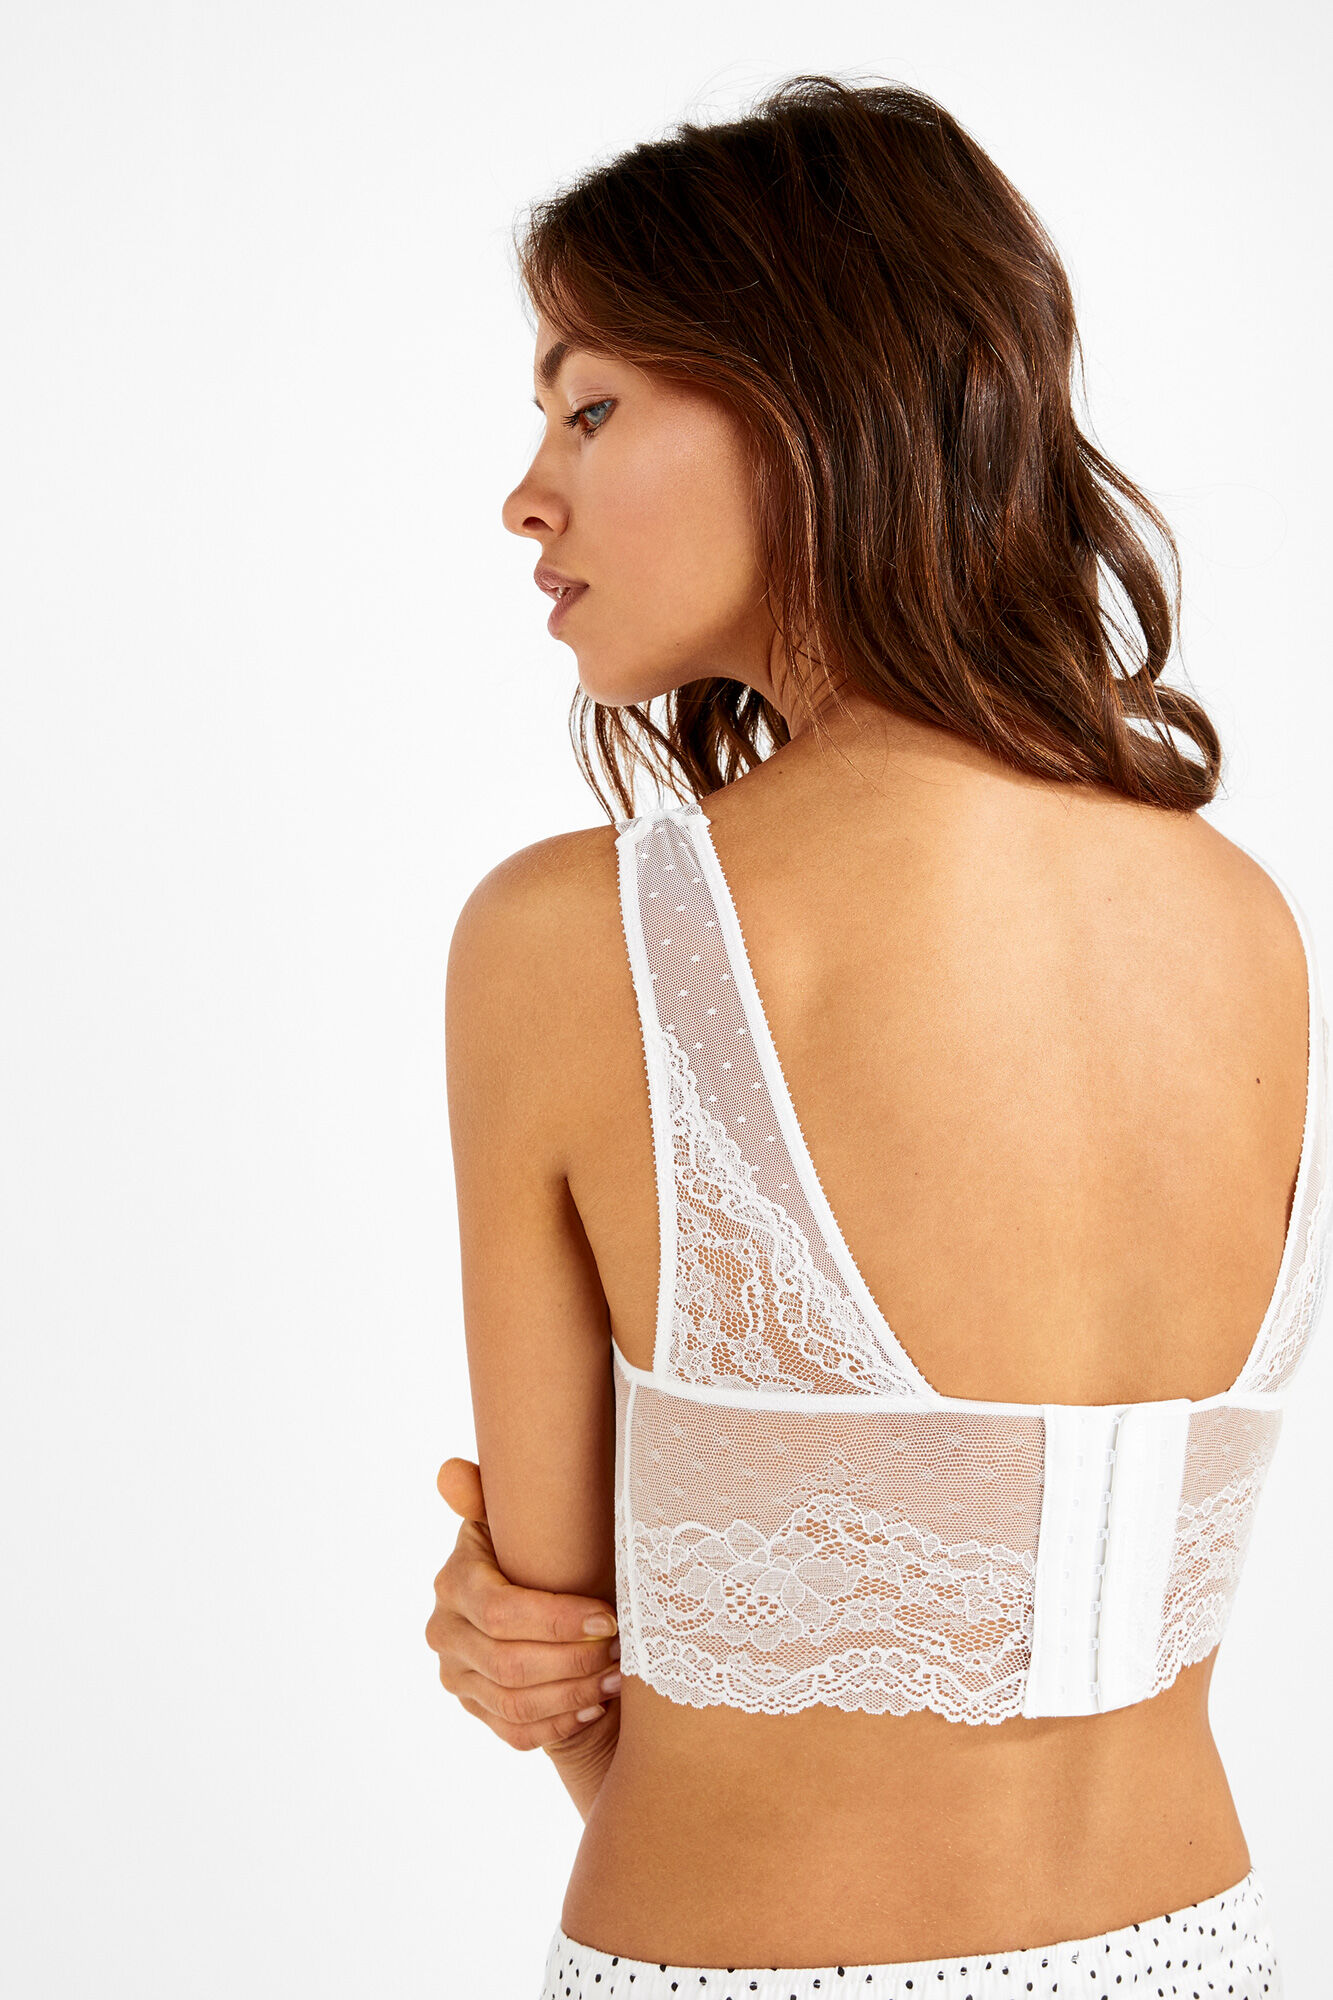 069778203c9fb Lace and plumetti halter bralette. JOLLY. Womensecret. Womensecret.  Womensecret